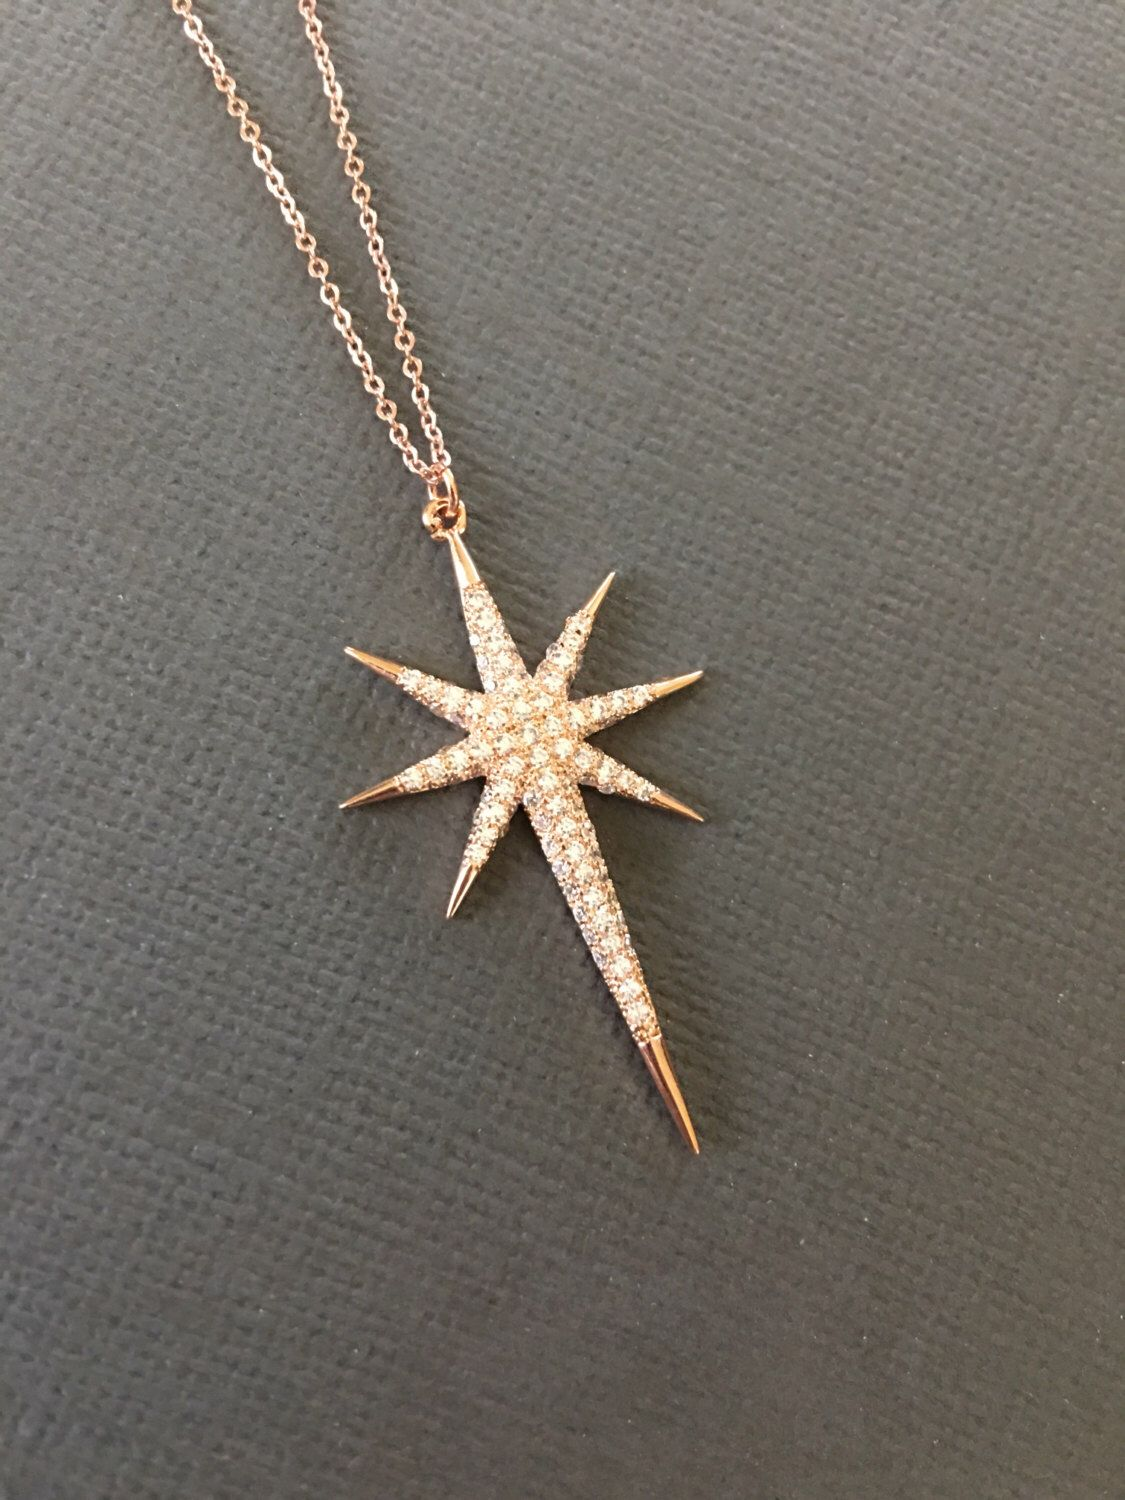 shop rose contemporary pendant north jewellery gold online star buy irish